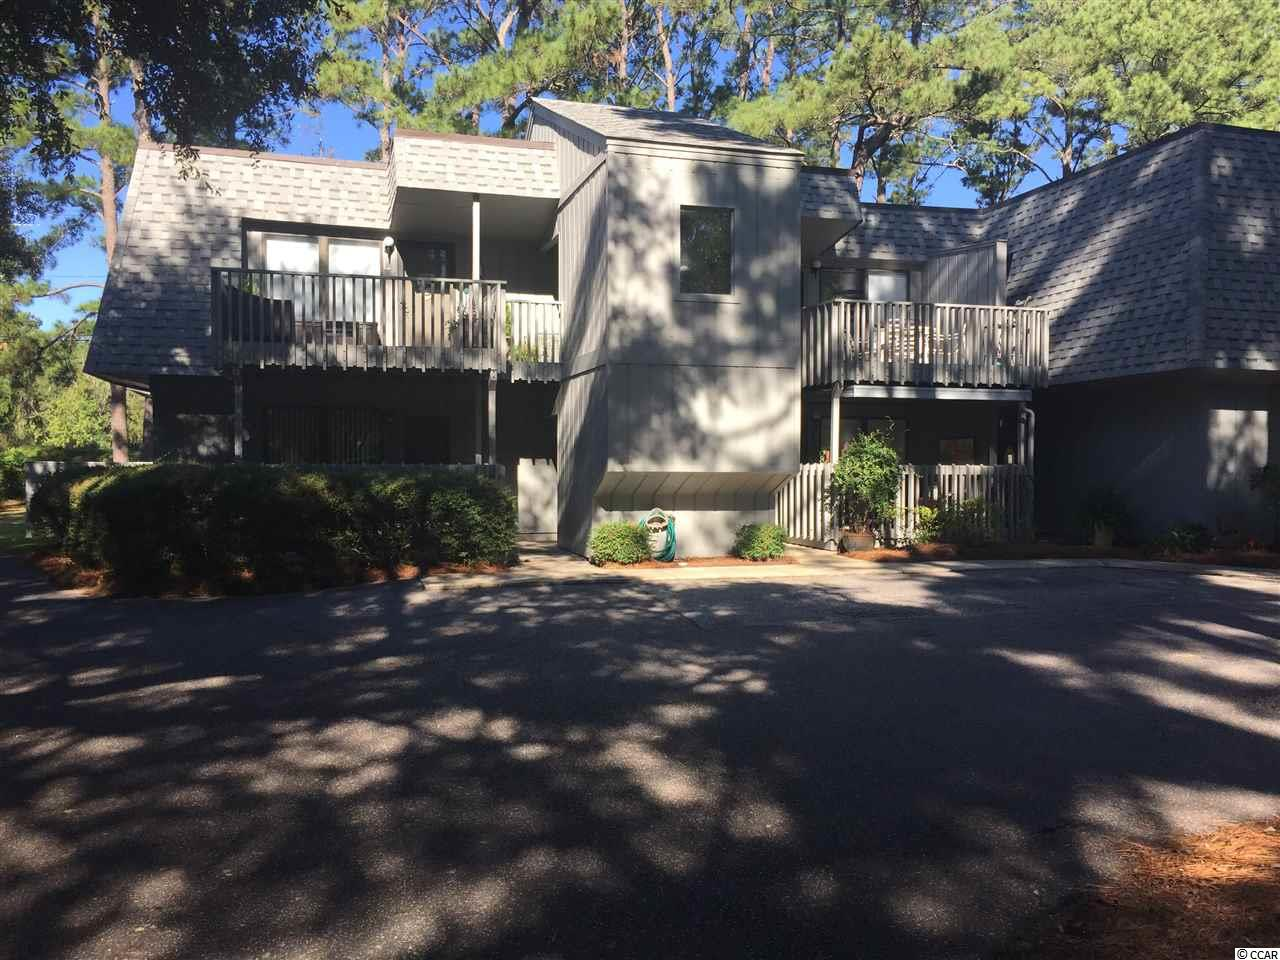 This 2 bedroom unit is in a well established community with beautiful live oaks. This unit is on the ground floor and is an end unit. Close to to the beach, fine dining, shopping, and golf courses. This unit has new flooring and fresh paint. Some upgrades needed but would make a great vacation home, rental investment or a permanent home close to the beach. HOA includes pool, club house, and community dock on the creek. The square footage is approximate and is buyers responsibility to verify.